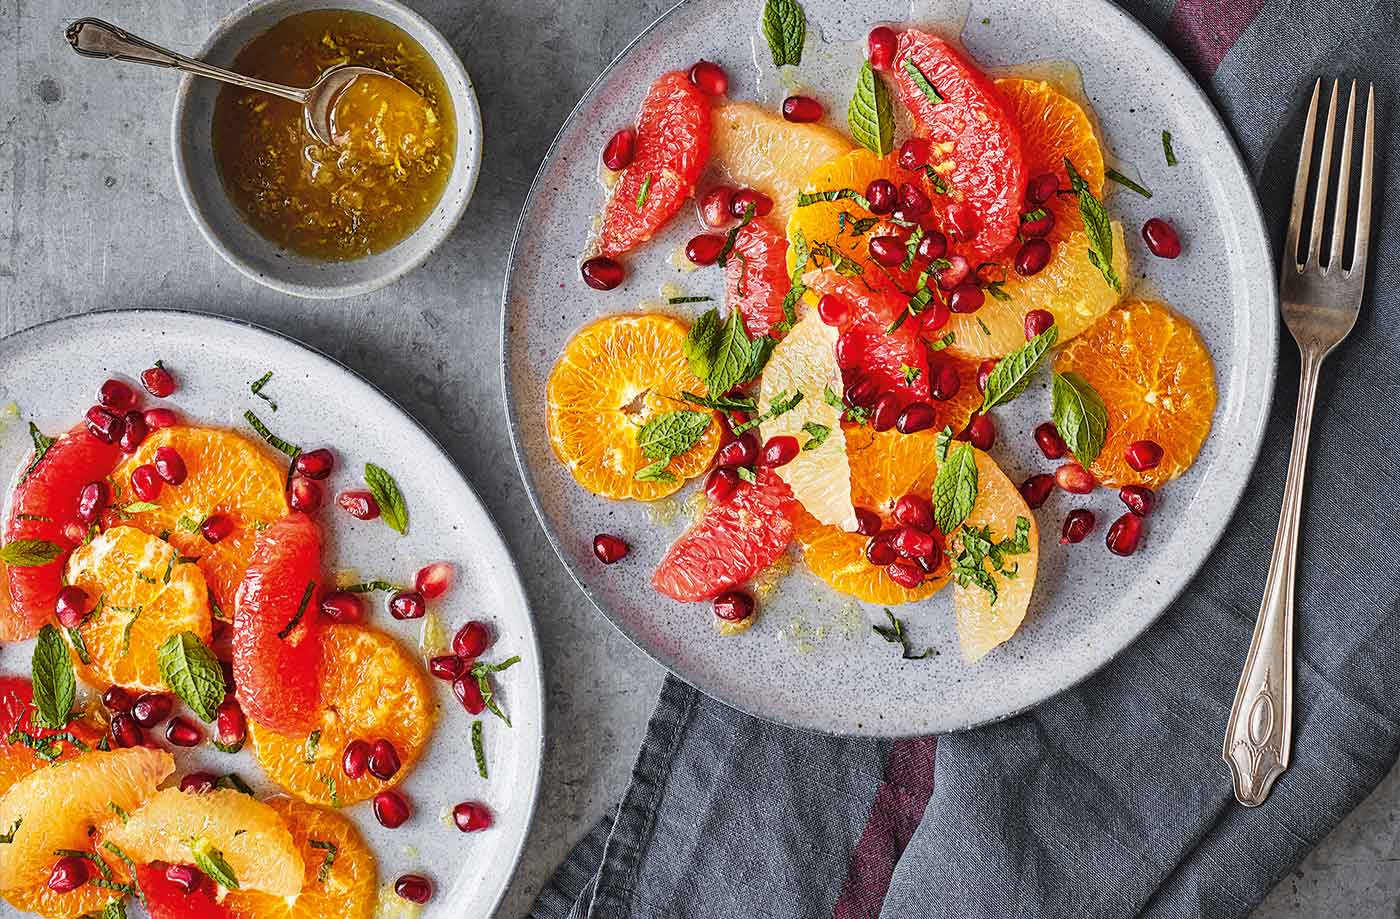 Clementine, pomegranate and grapefruit salad recipe